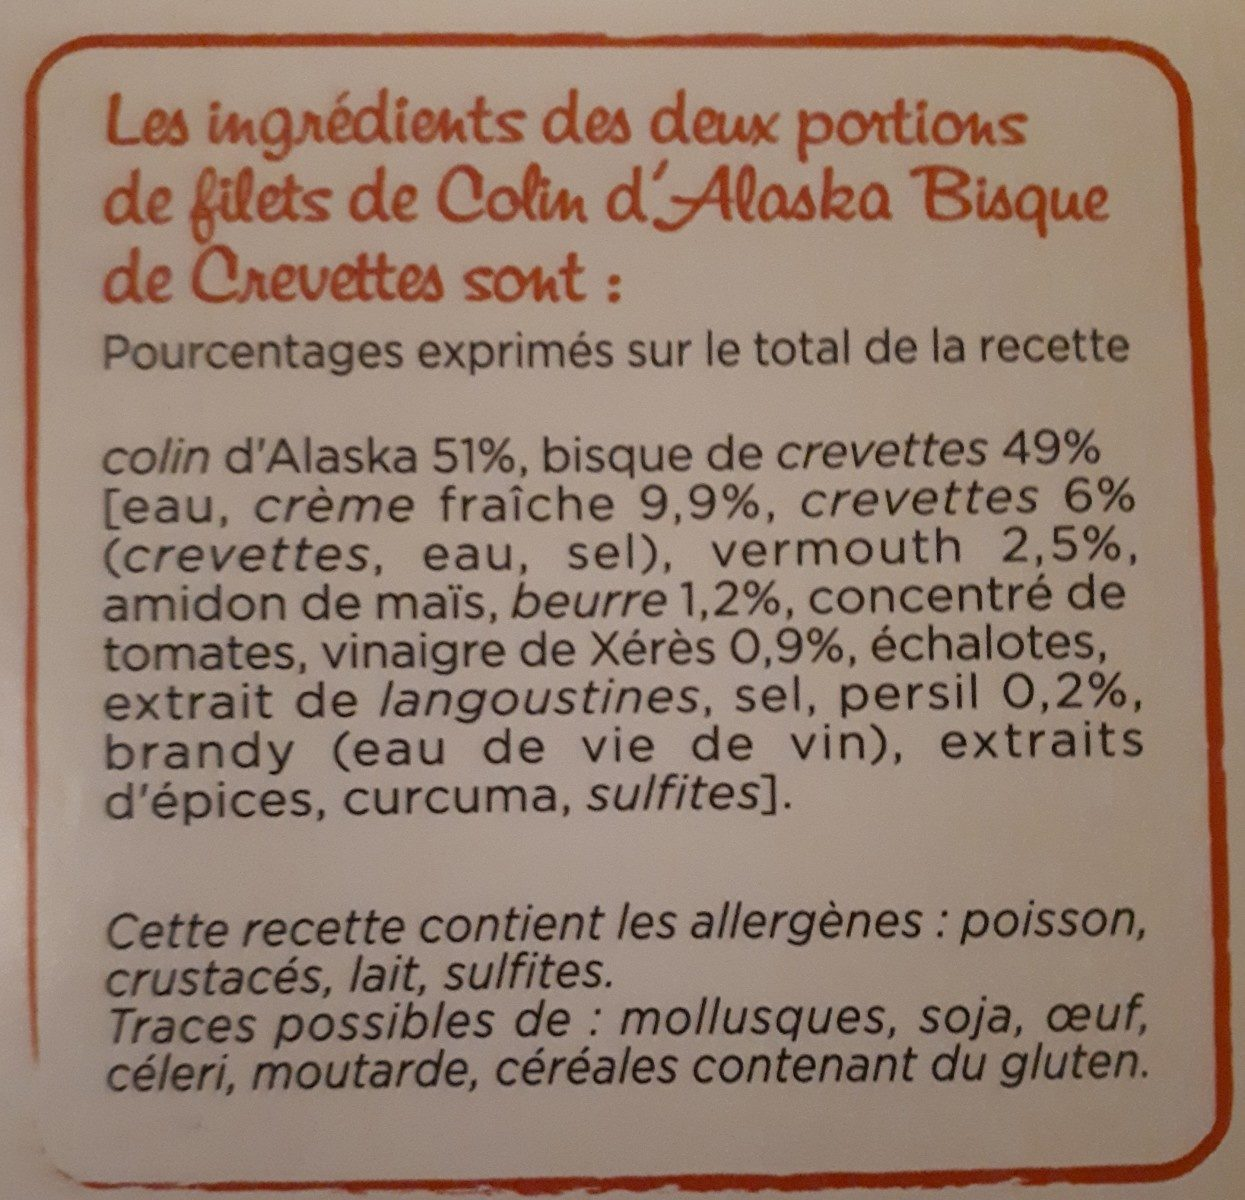 Colind'Alaska, Bisques de crevettes - Ingredients - fr